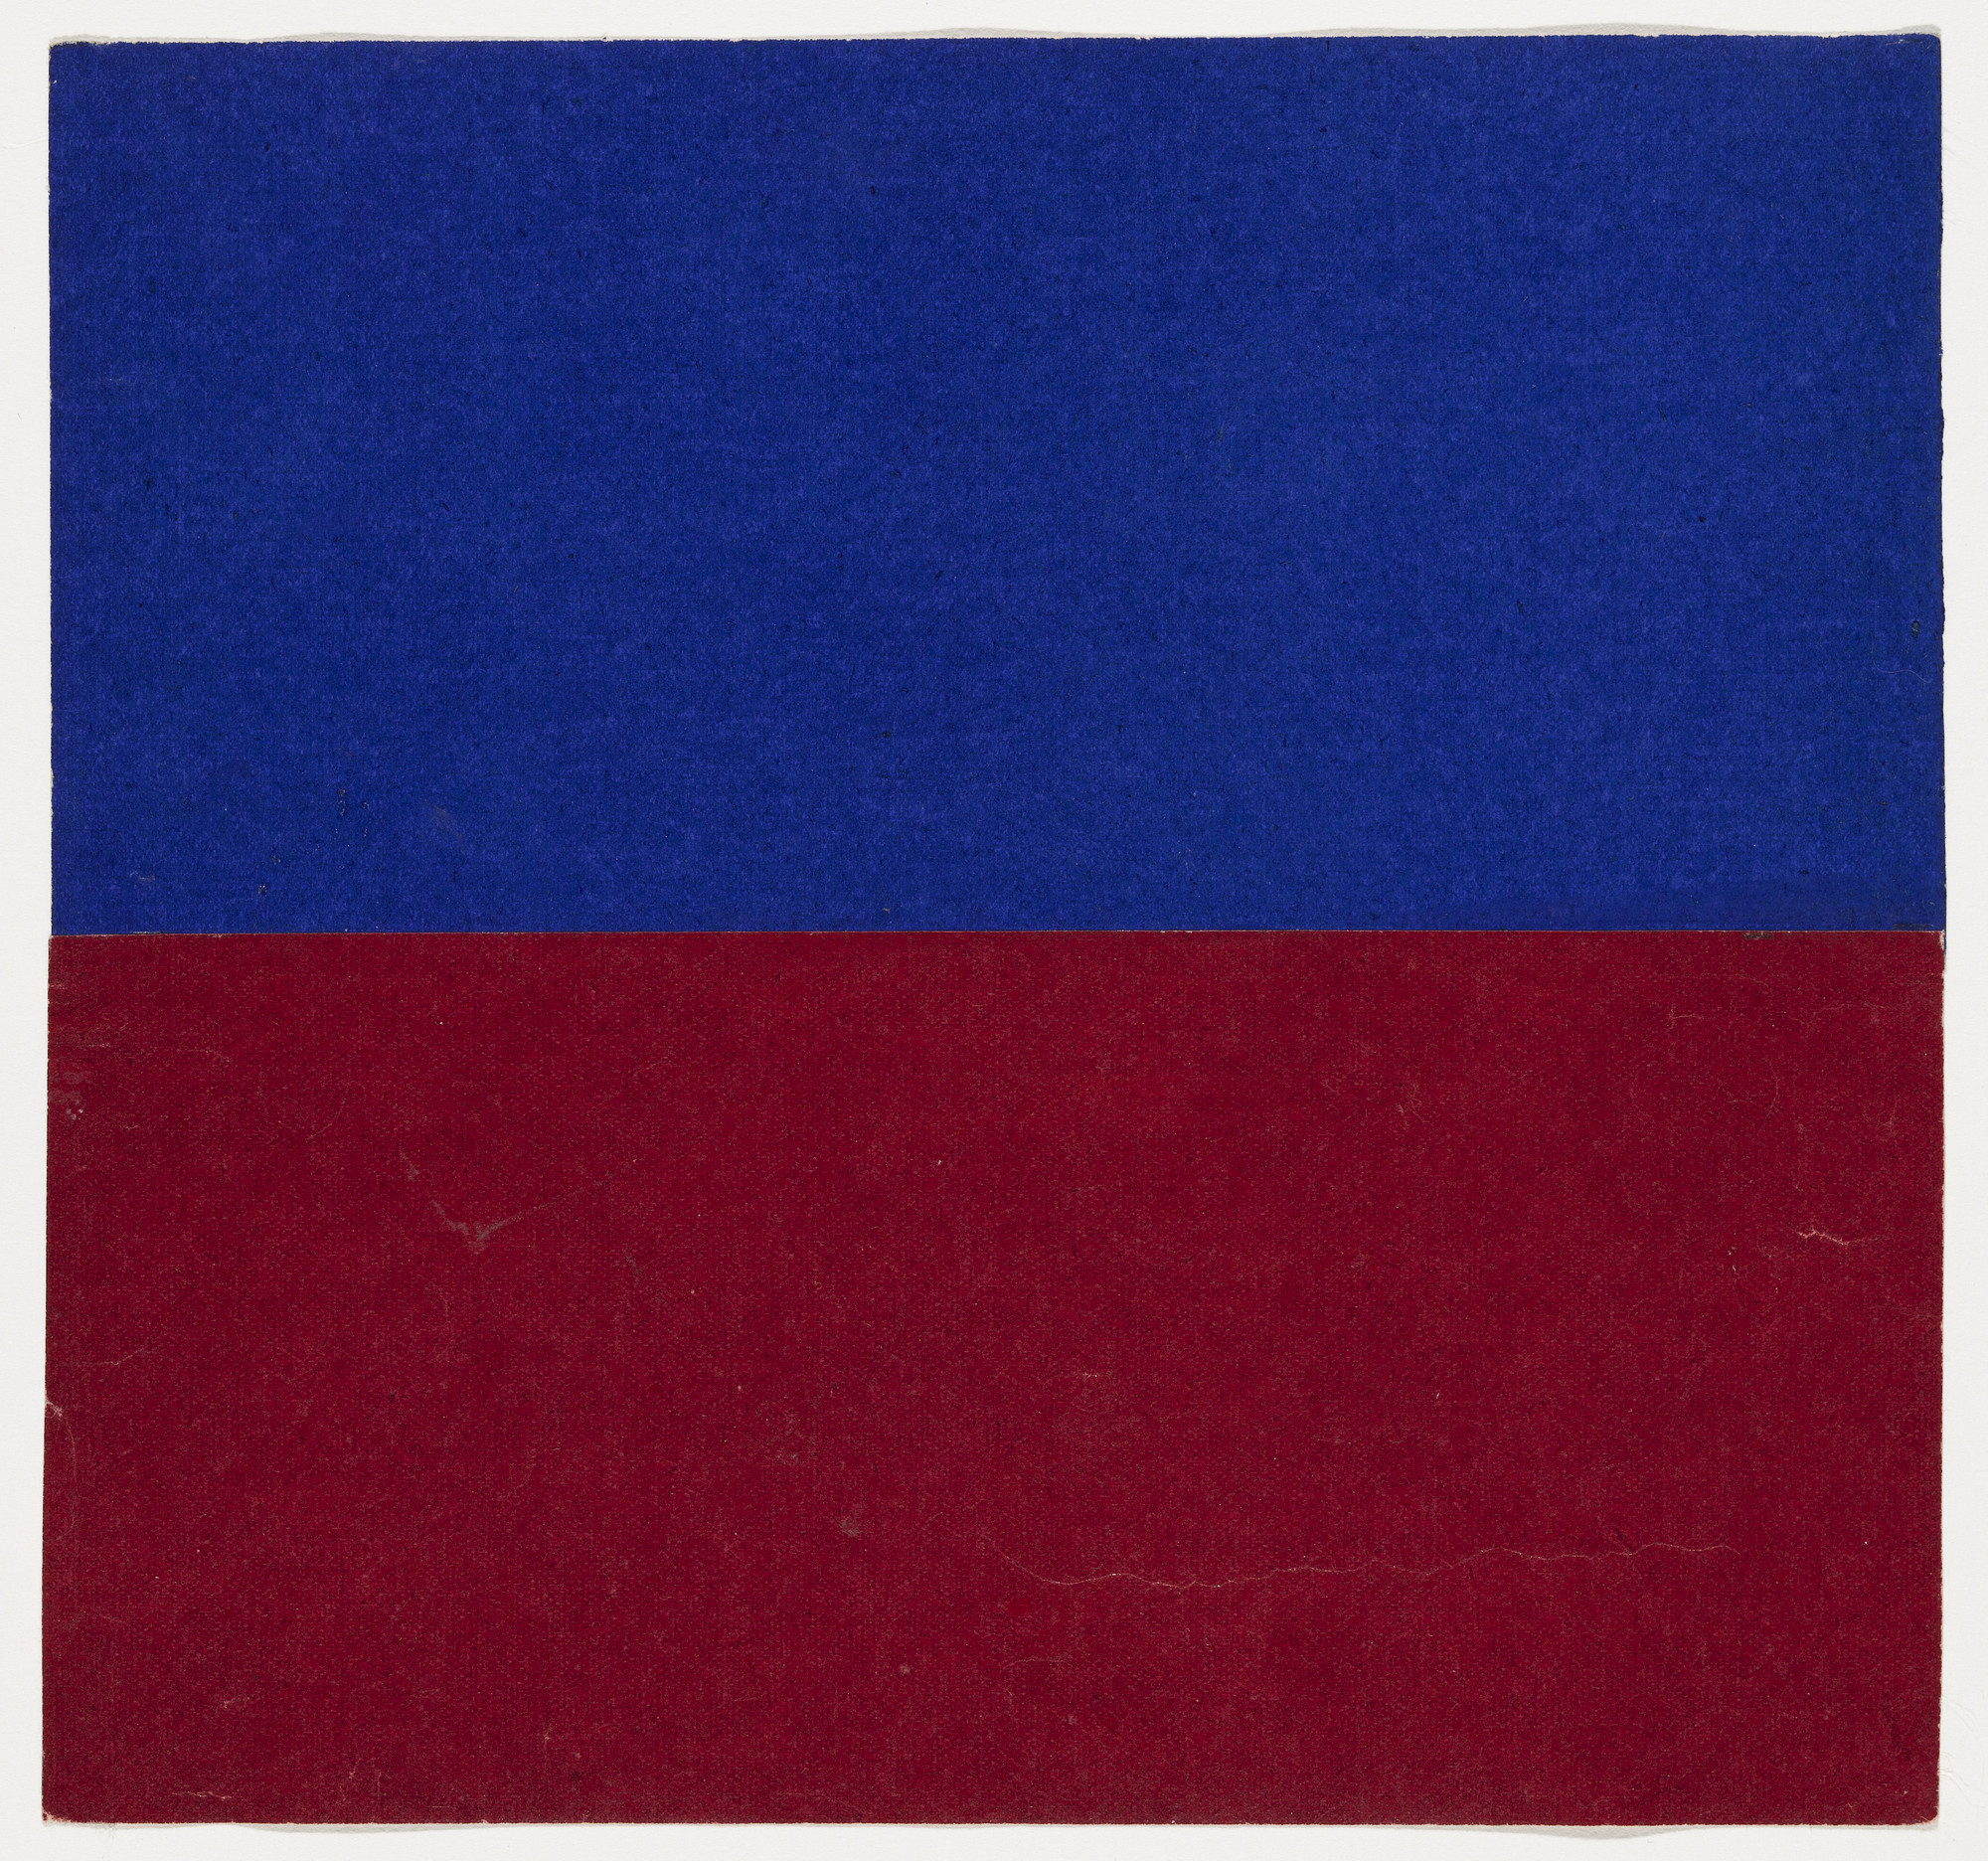 Ellsworth Kelly. Blue and Red. 1951